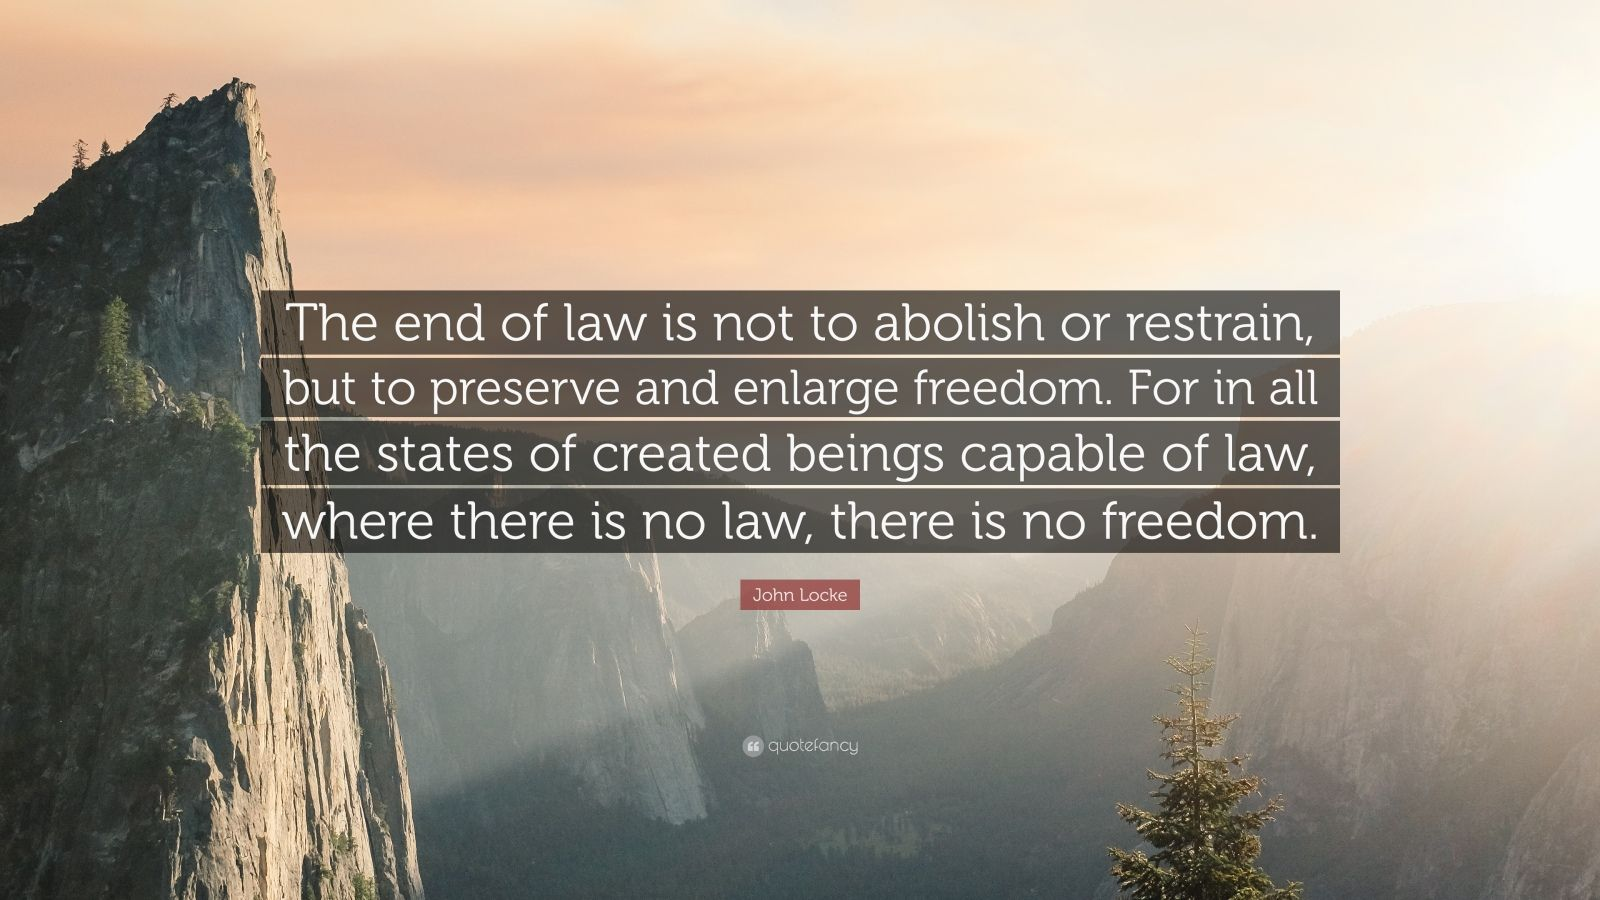 """John Locke Quote: """"The end of law is not to abolish or restrain, but to preserve and enlarge freedom. For in all the states of created beings capable of law, where there is no law, there is no freedom."""""""